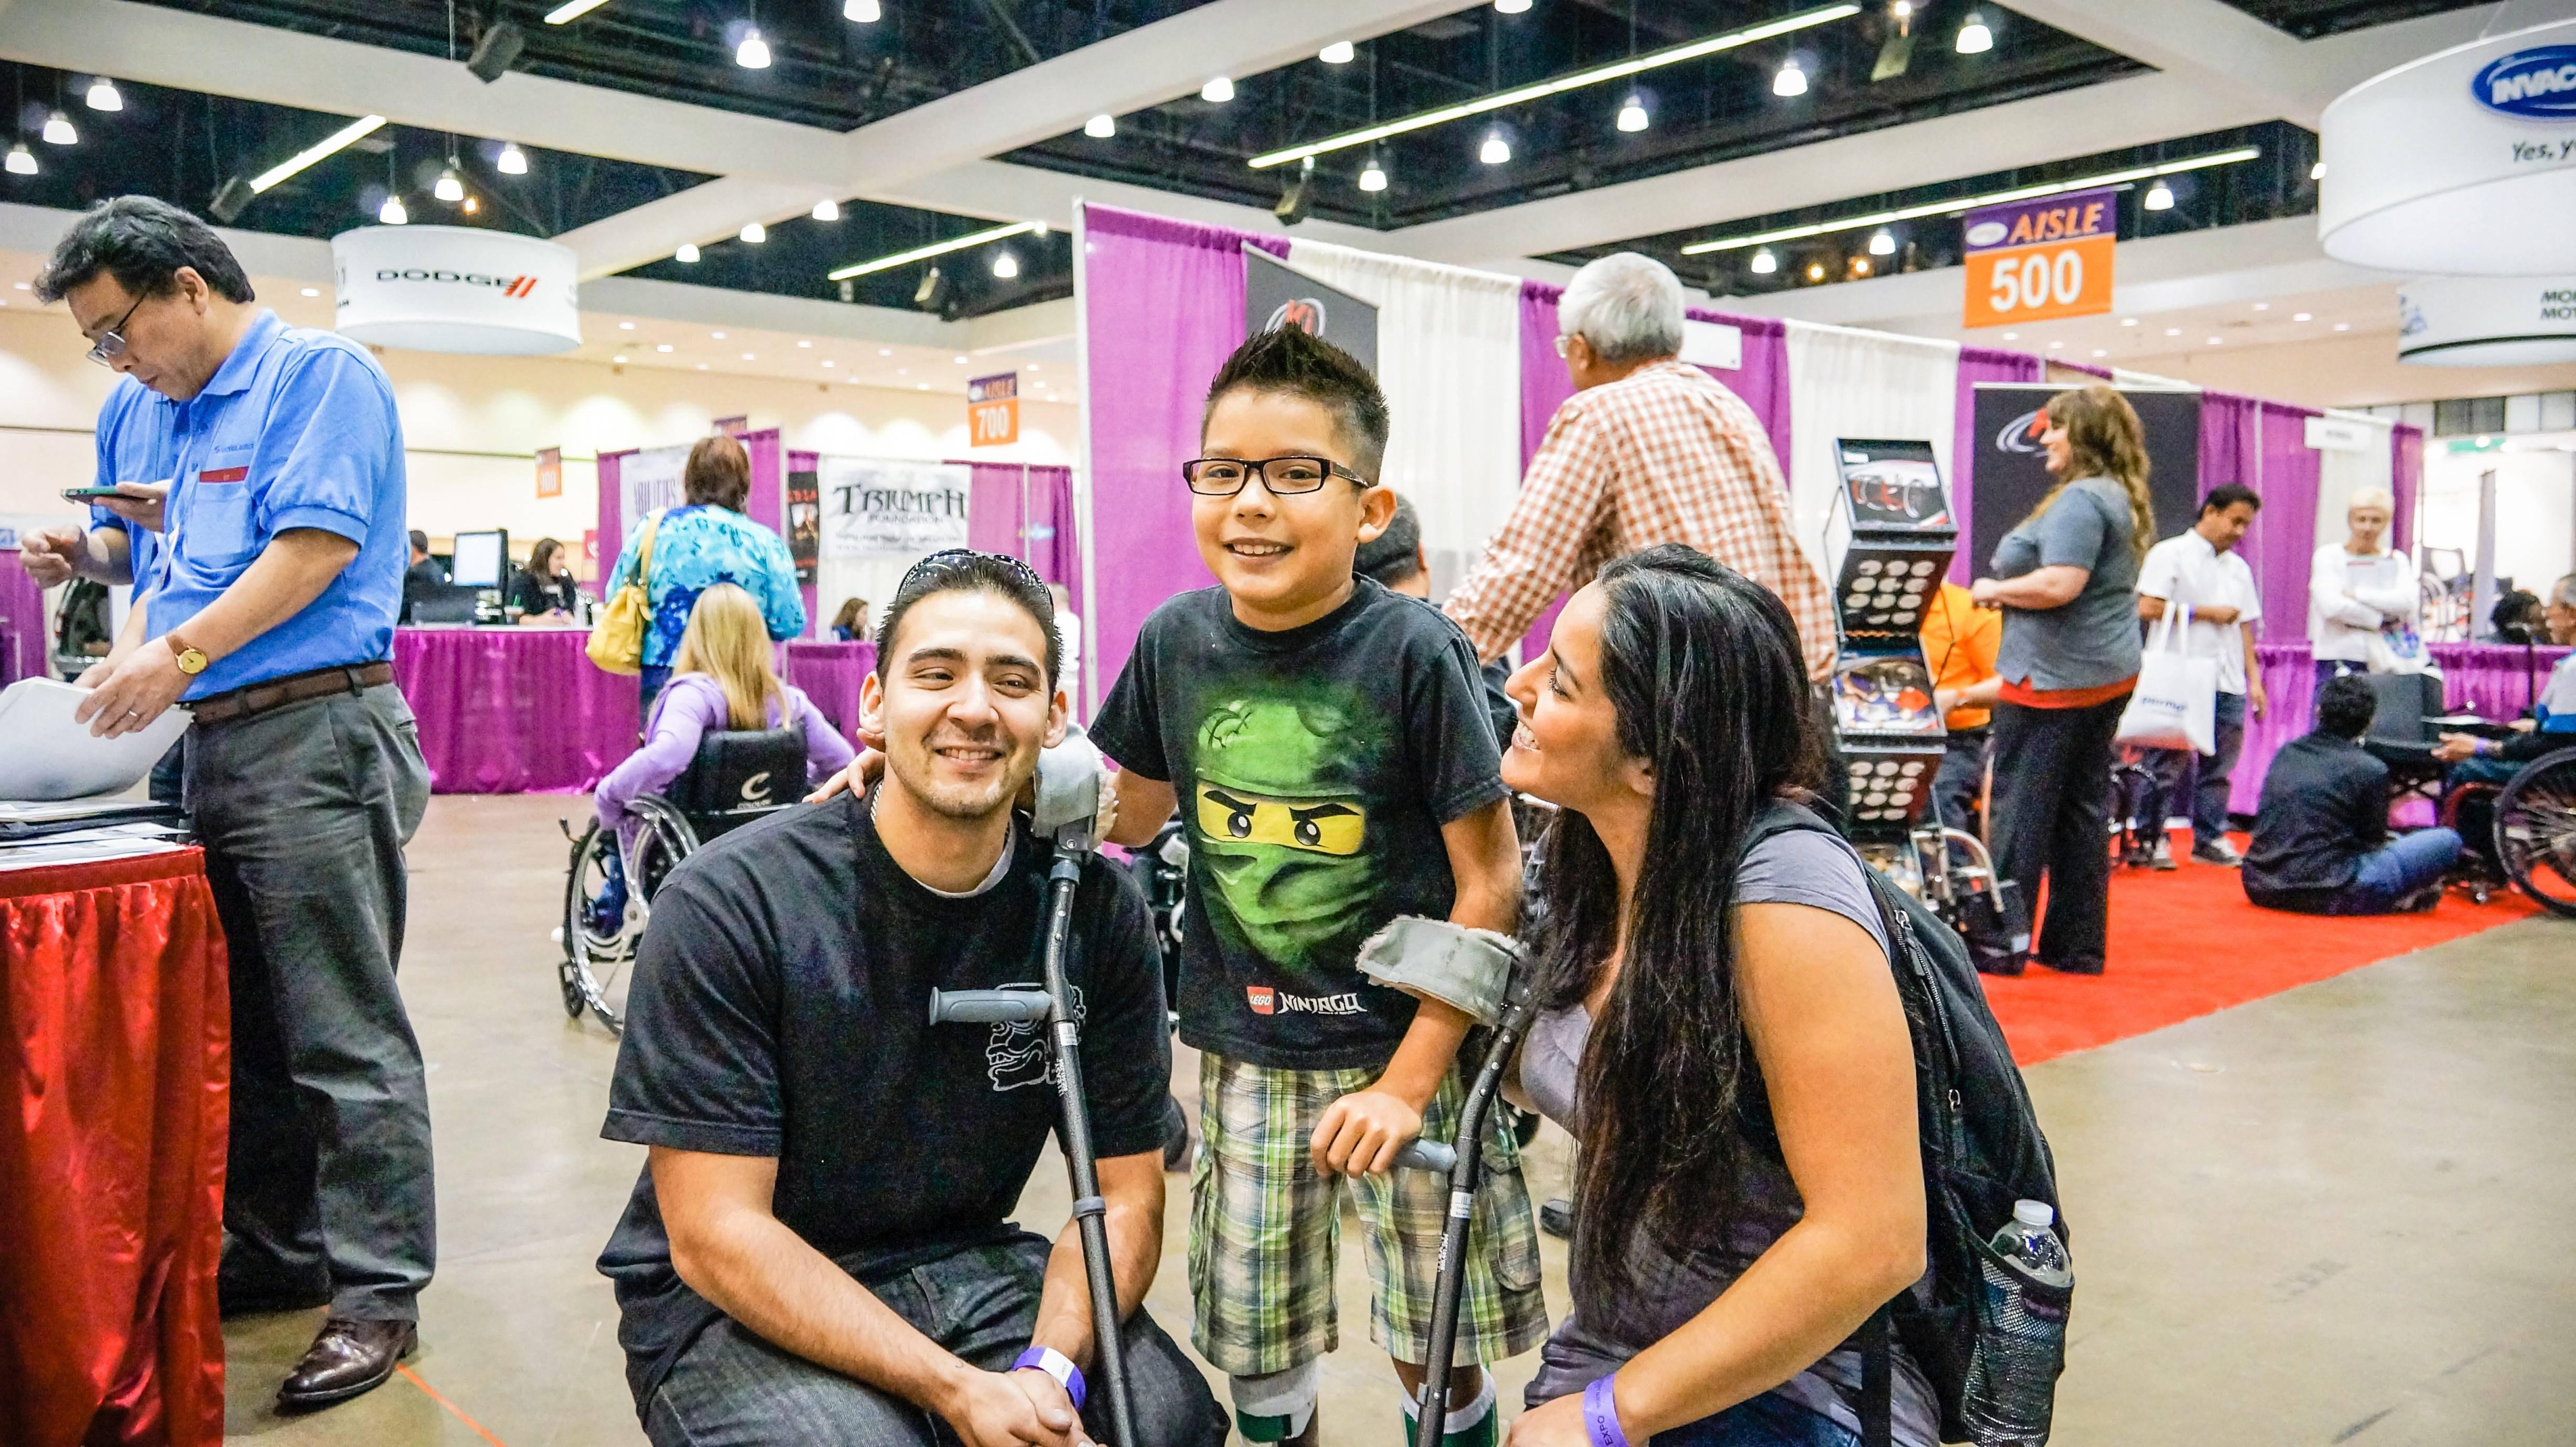 Alexzander Prado and his family visit Abilities Expo each year to find the latest products and services.